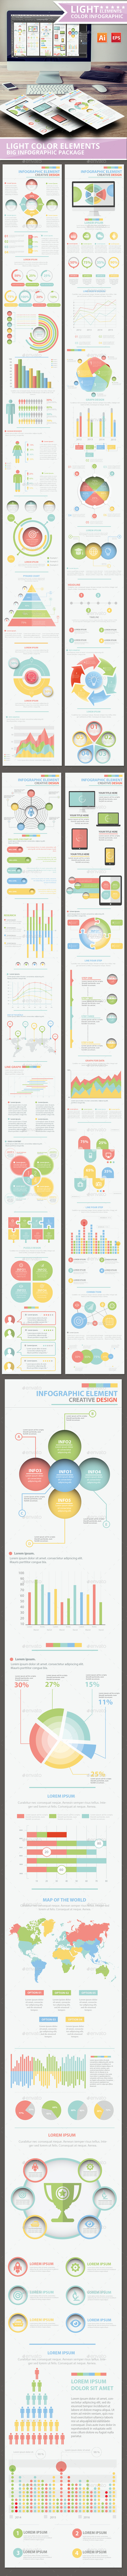 Light Color Info Graphic Elements Design - Infographics